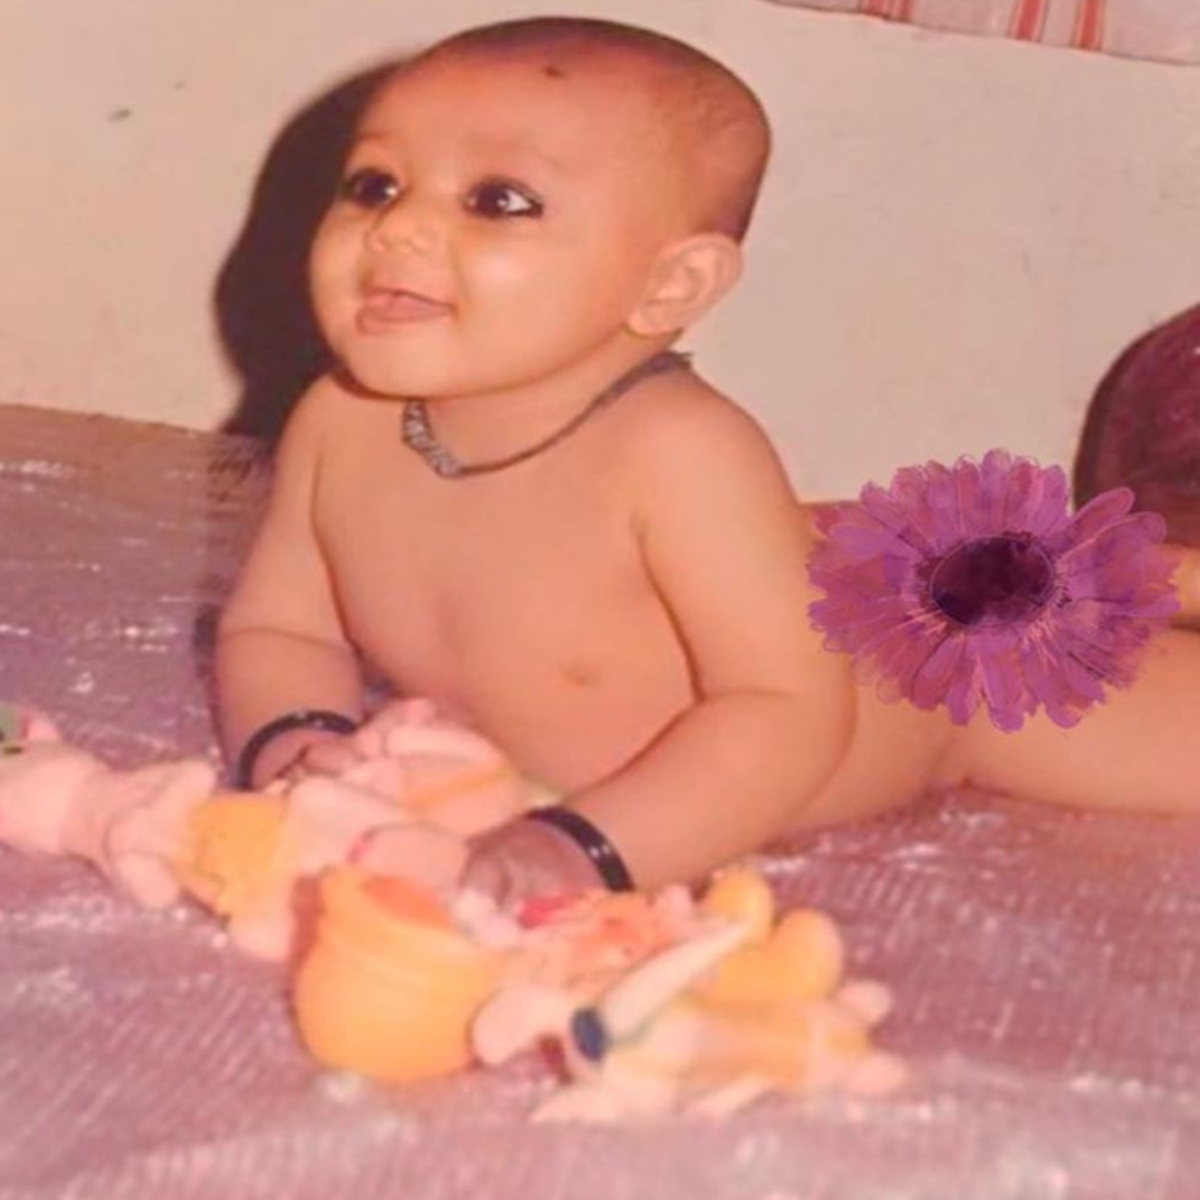 Children S Day 2019 India Idol 11 Judge Neha Kakkar Shares A Childhood Pic Thanks Parents For Their Support Pinkvilla